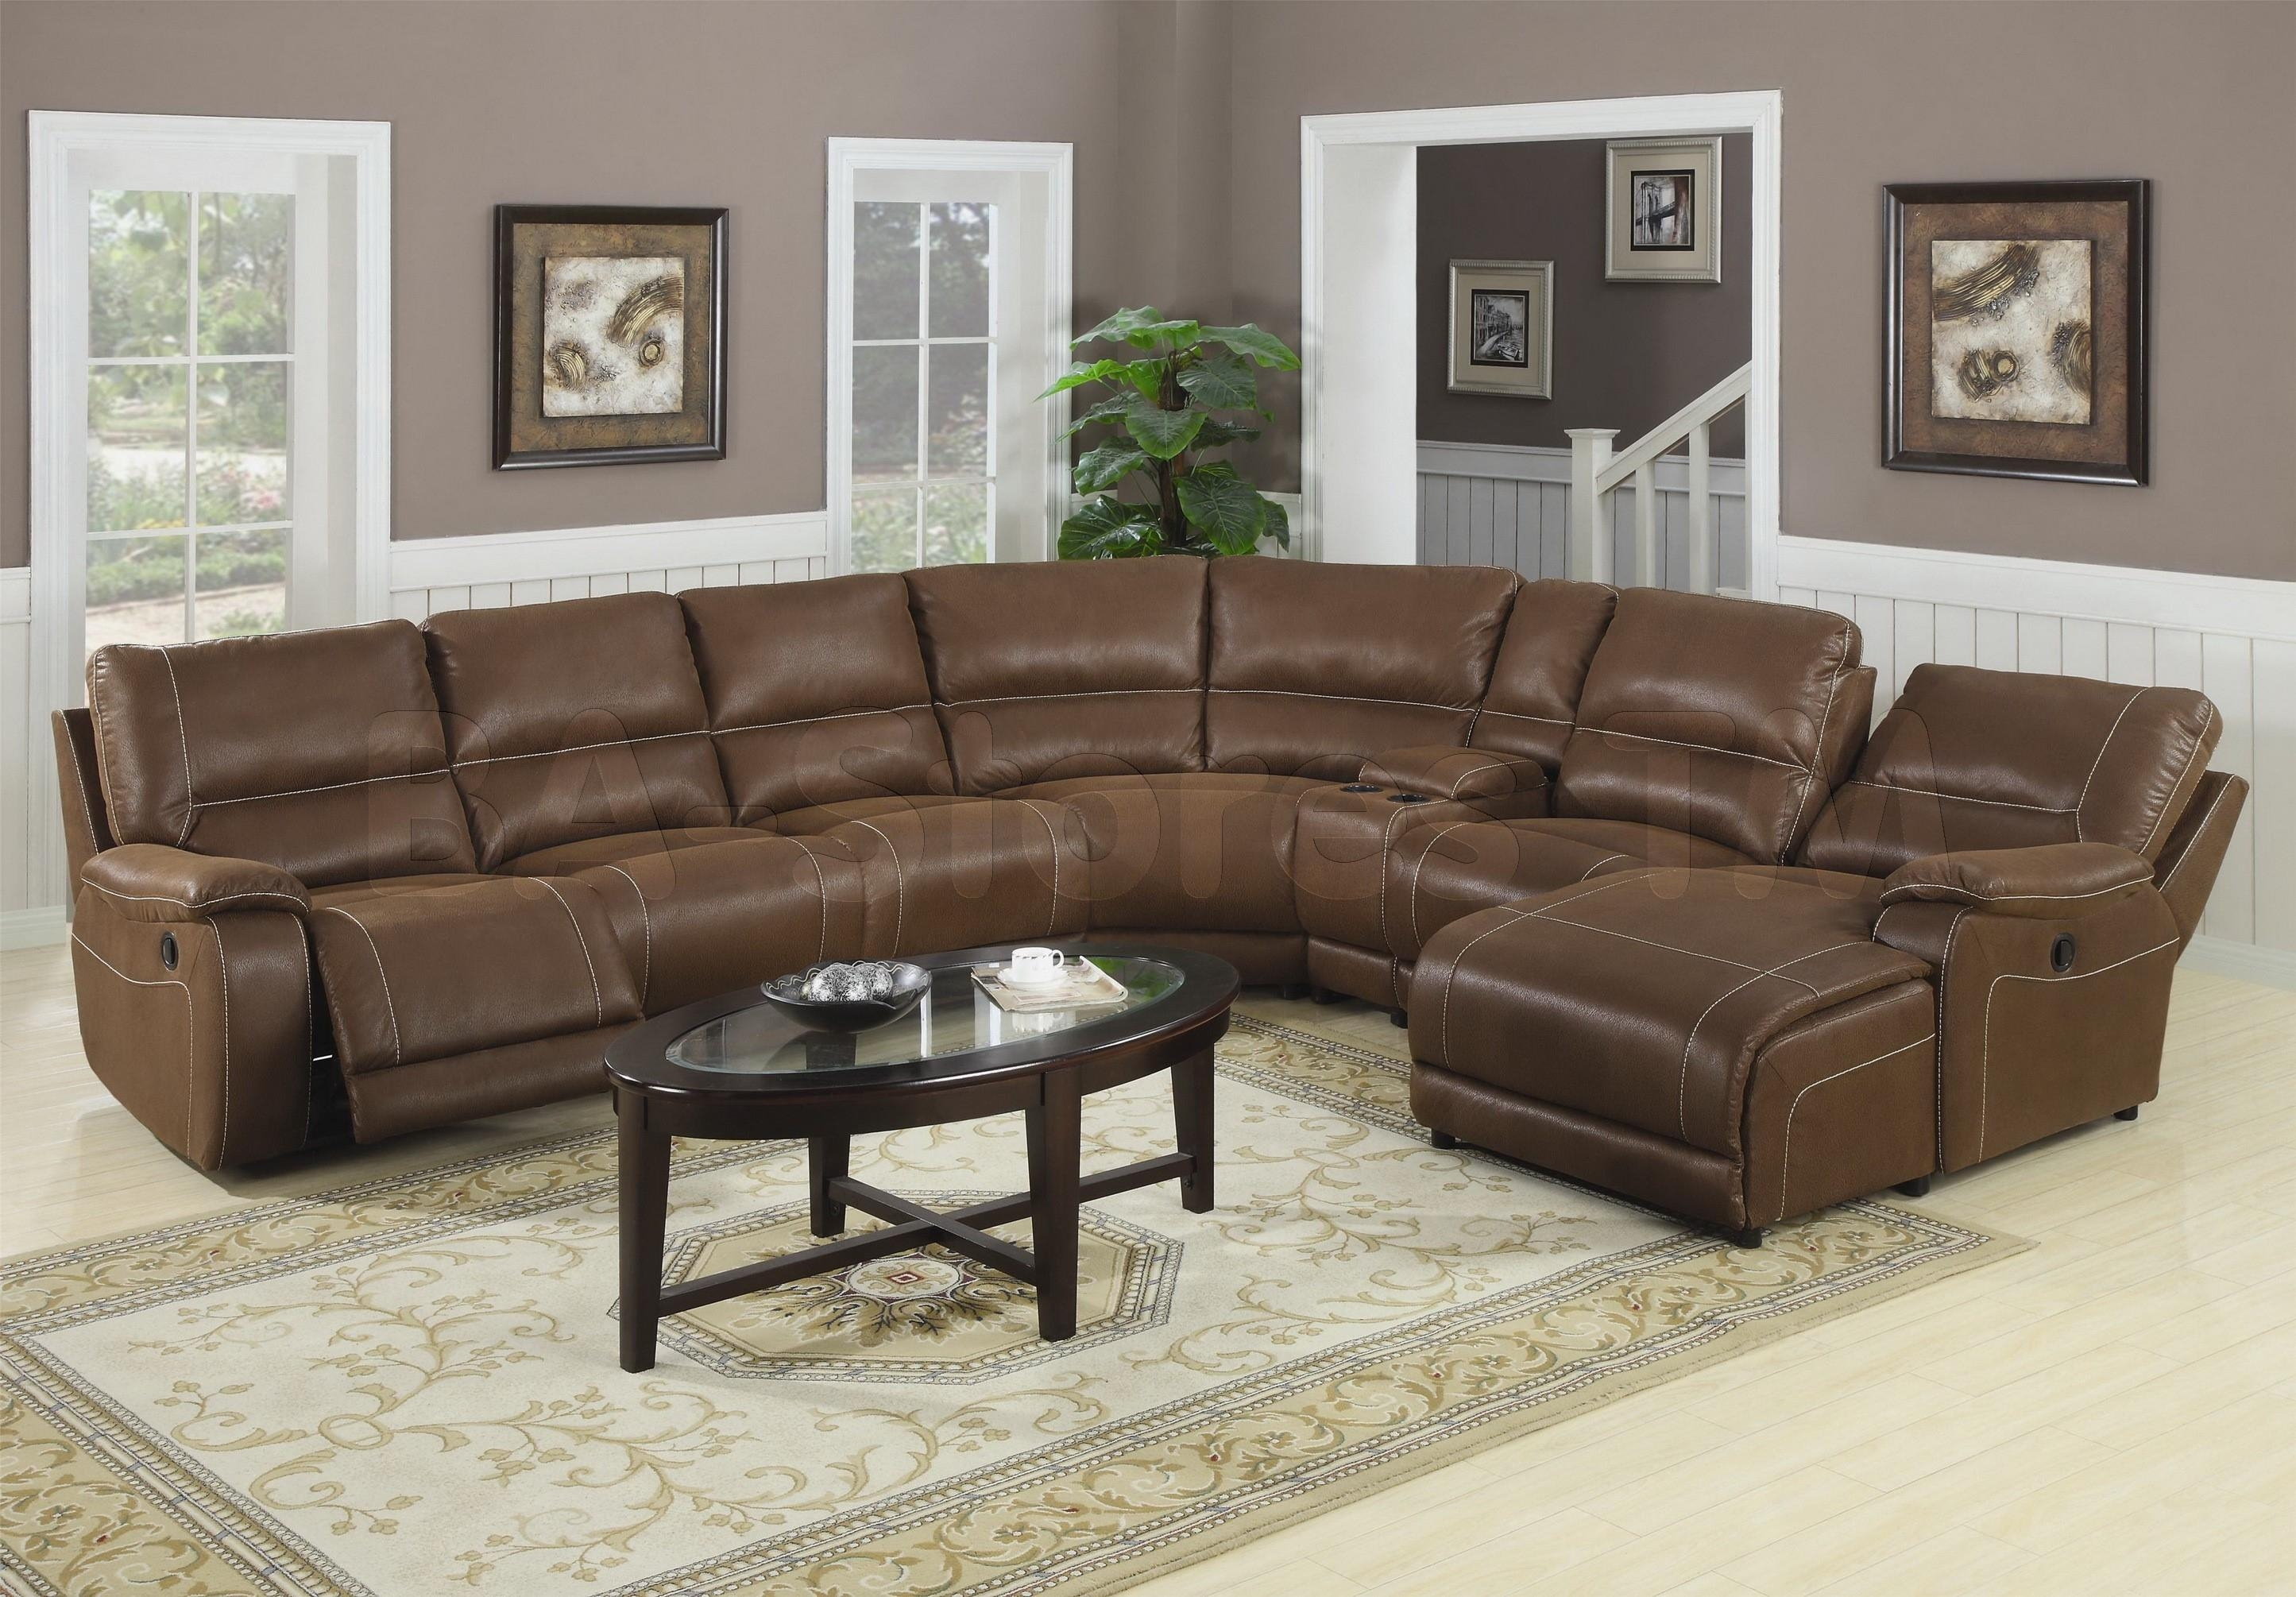 Luxury Sectional Sofas Okc 76 On Slumberland Sofa Sleepers With Within Slumberland Couches (Image 11 of 20)